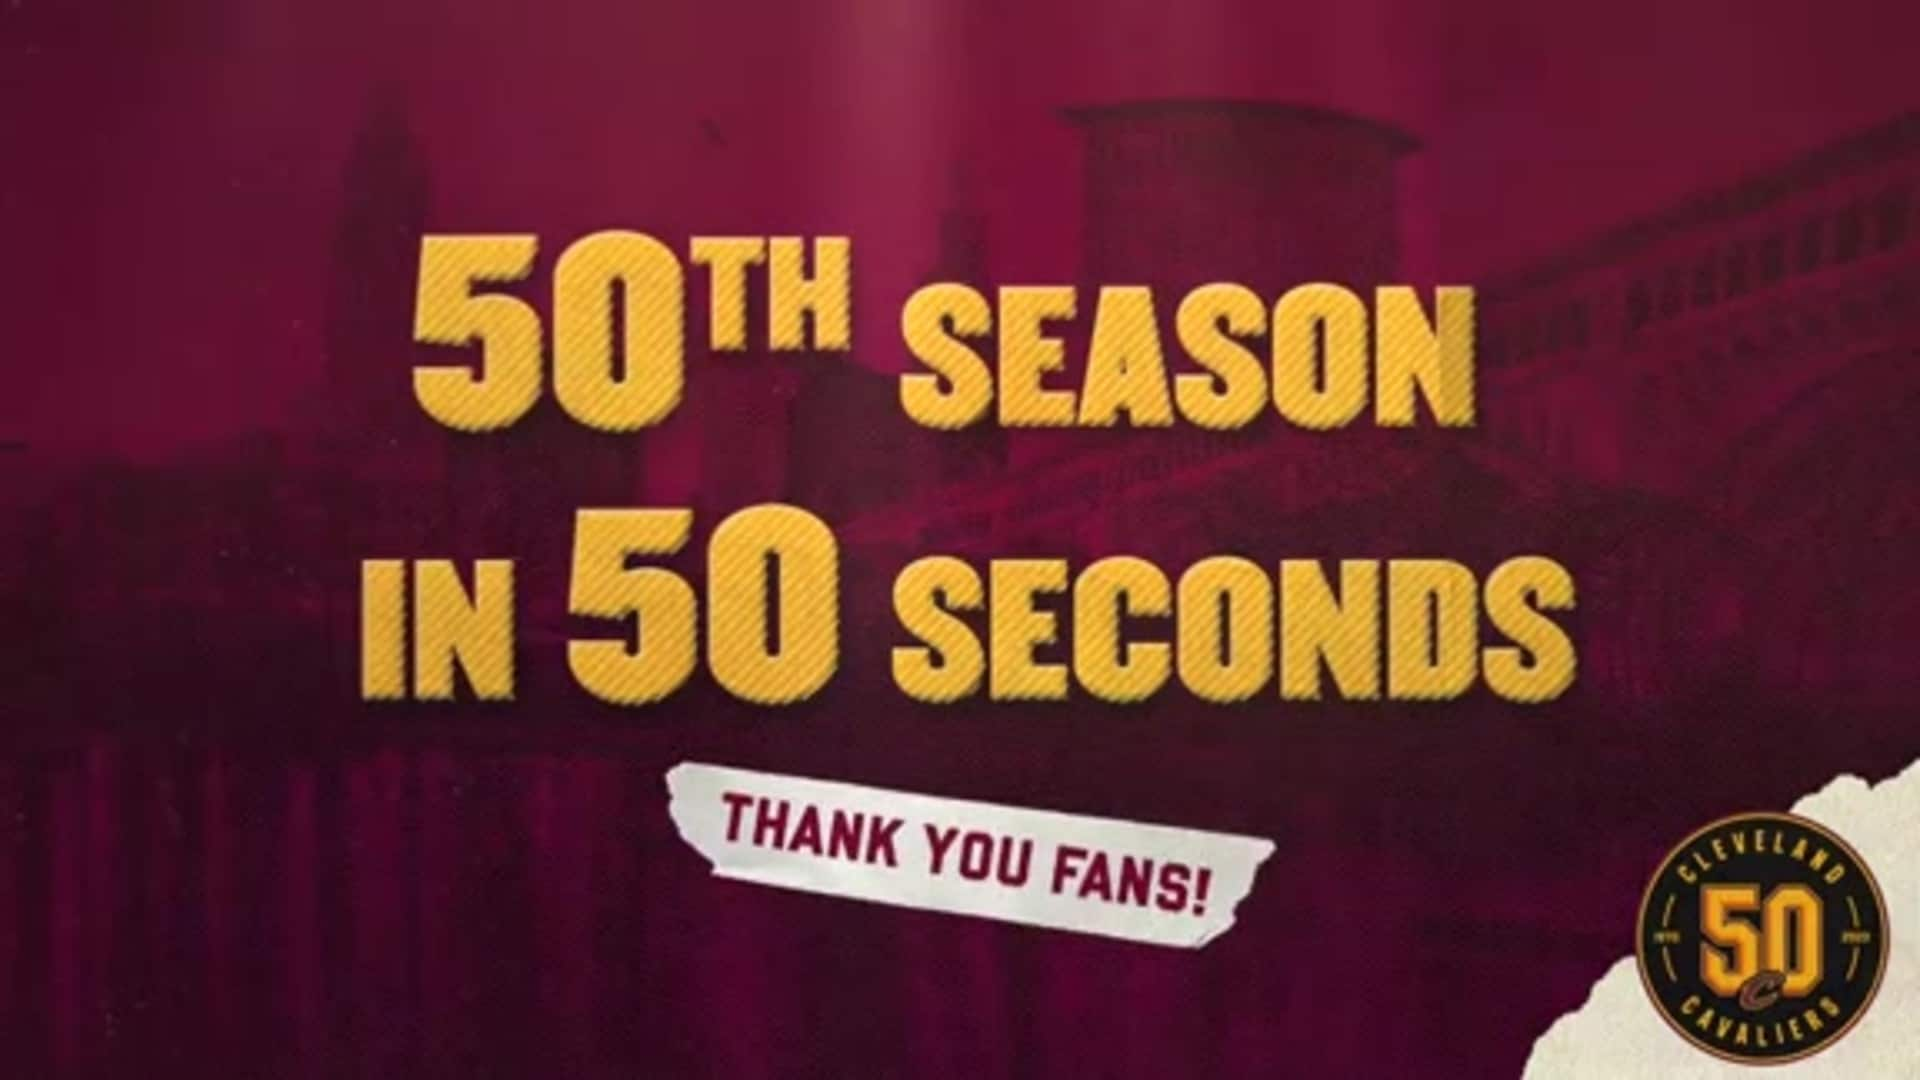 50th Season in 50 Seconds